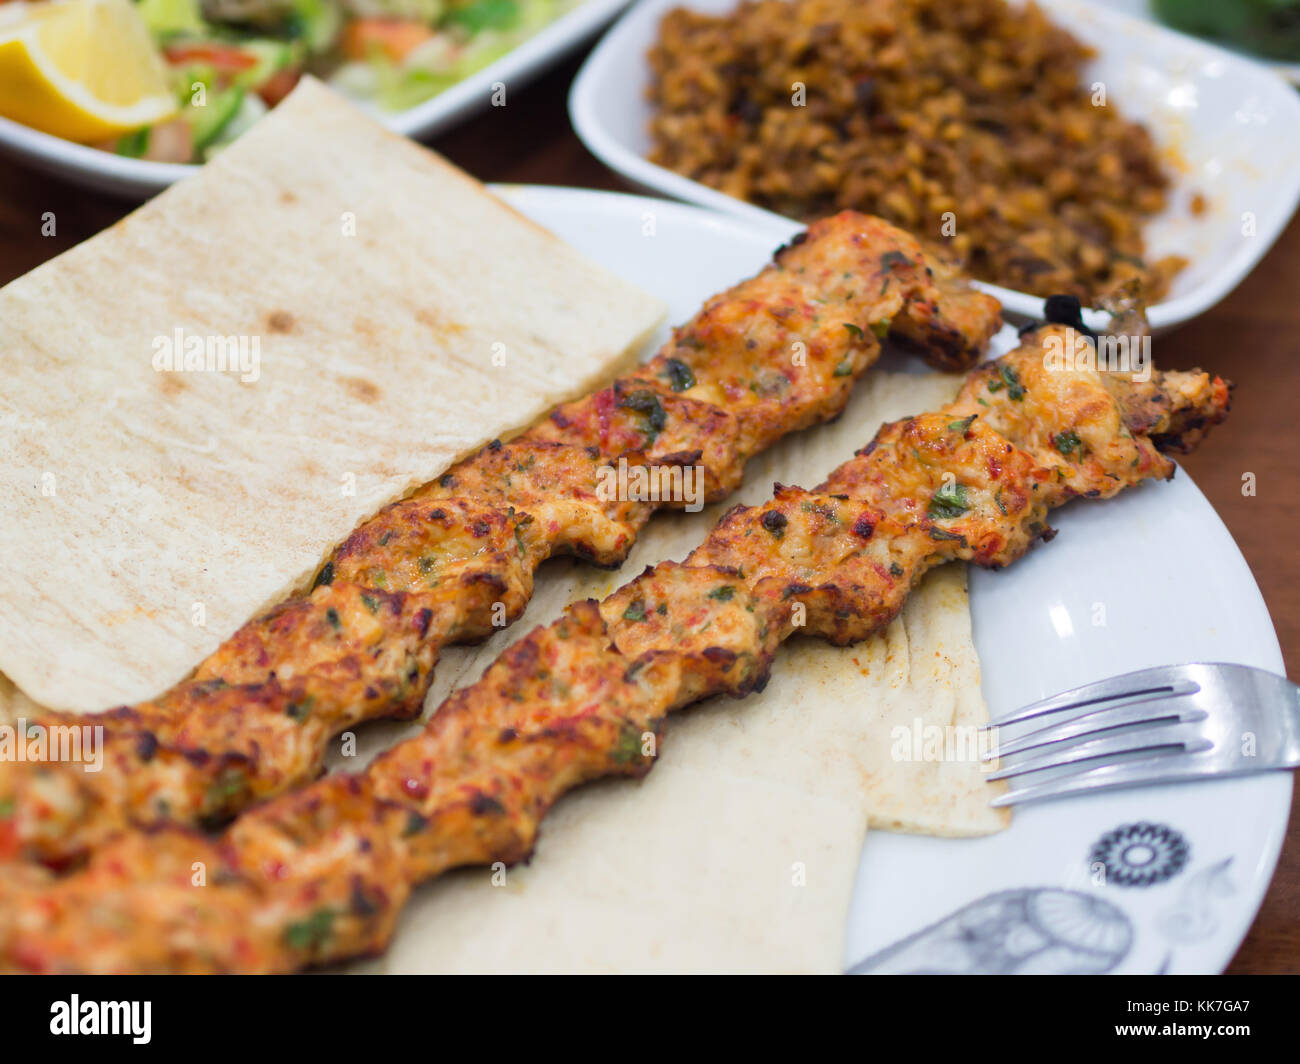 White Plate Of Bread And Turkish Kebab Stock Photo Alamy